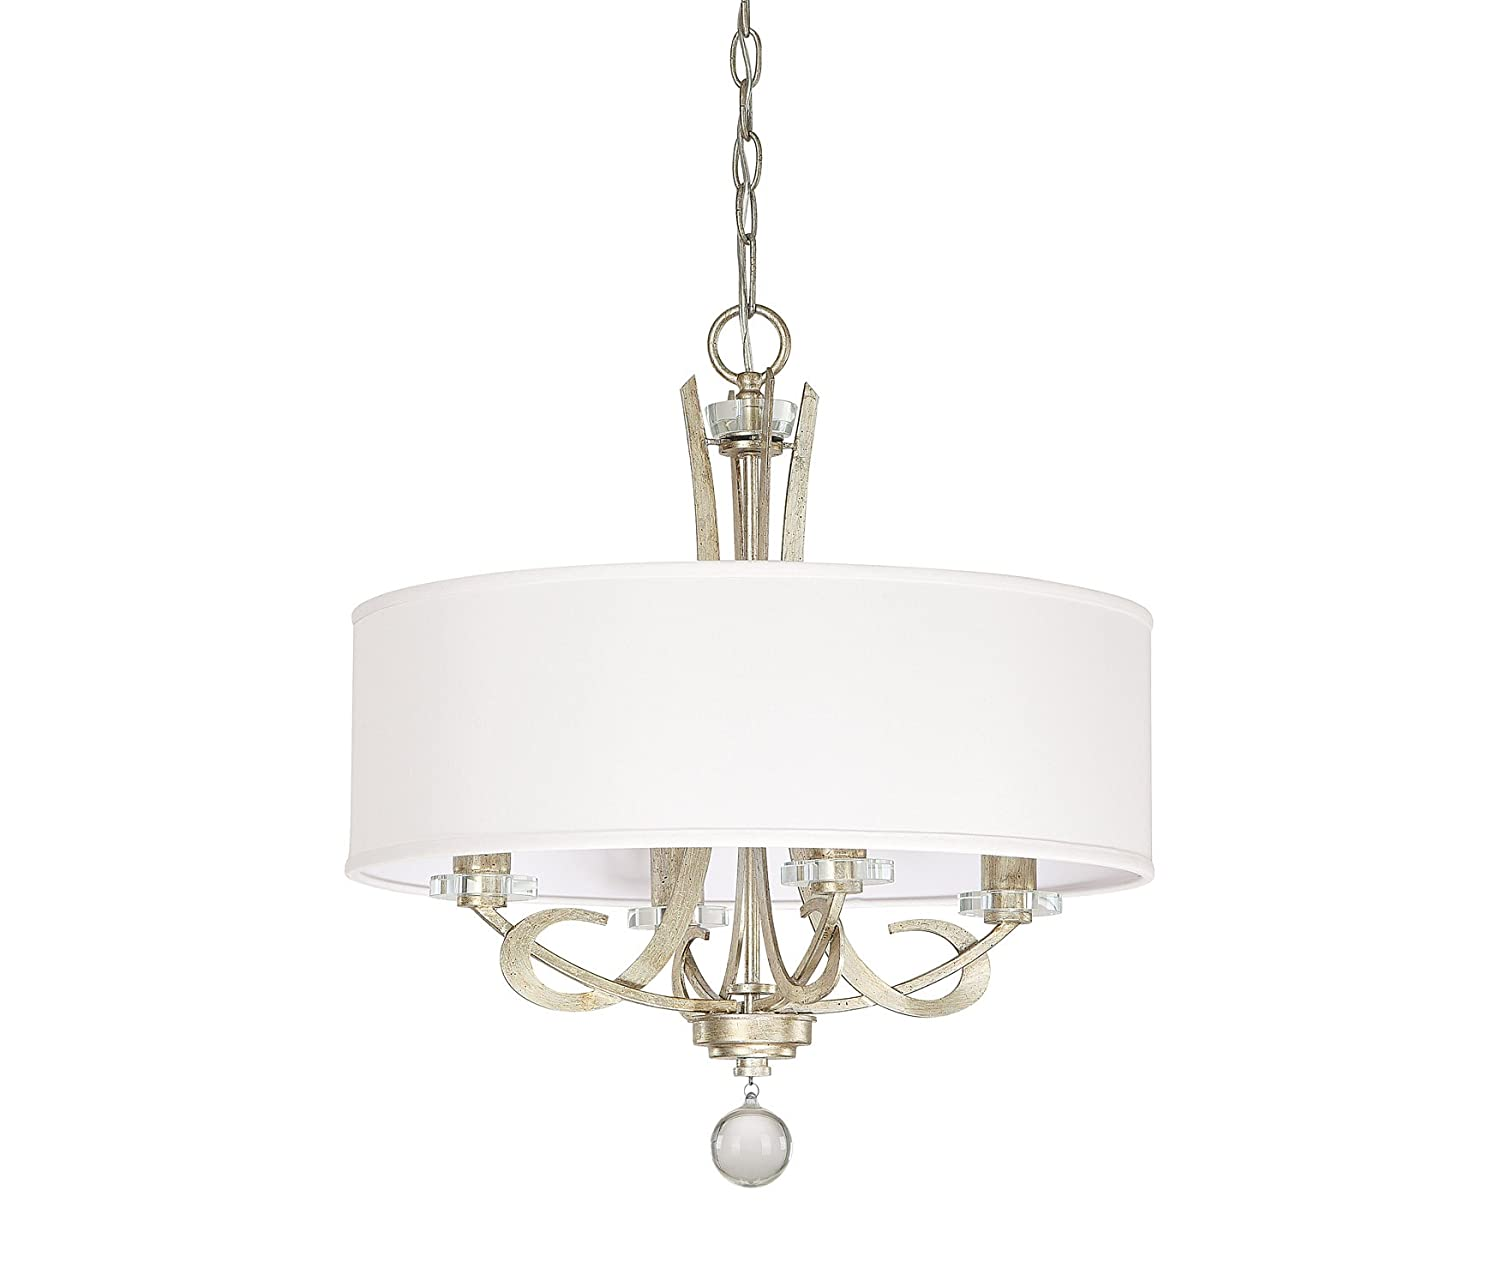 Capital Lighting 4264WG-568 Hutton 4-Light Chandelier Winter Gold Finish with Decorative Shade - Pendant Chandelier - Amazon.com  sc 1 st  Amazon.com & Capital Lighting 4264WG-568 Hutton 4-Light Chandelier Winter Gold ... azcodes.com